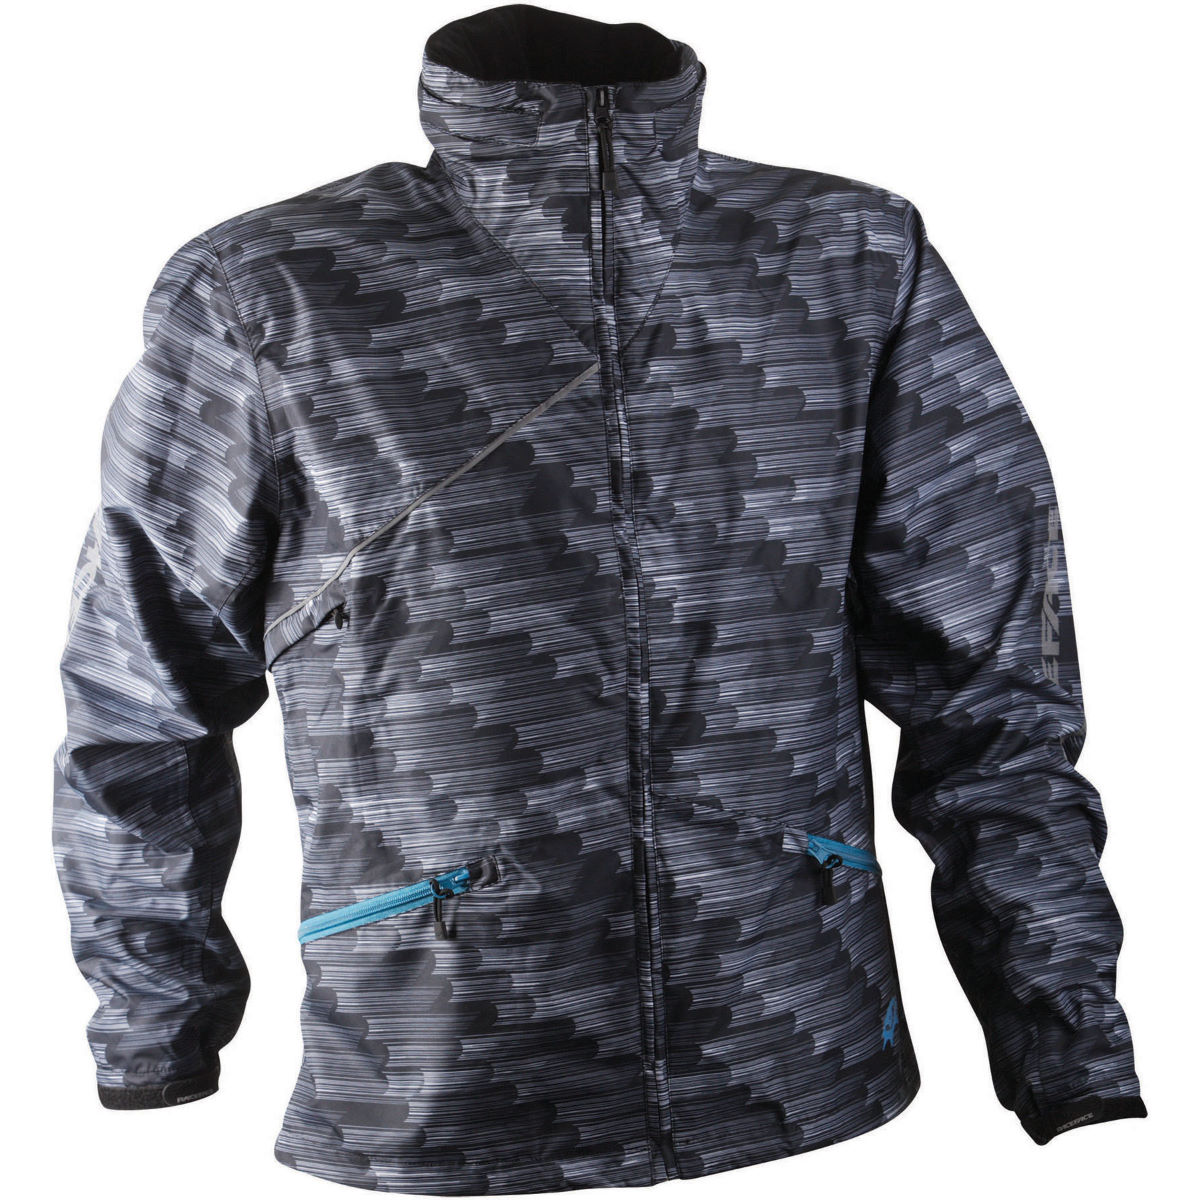 Race Face Aquanot Jacket - Impermeables - ciclismo